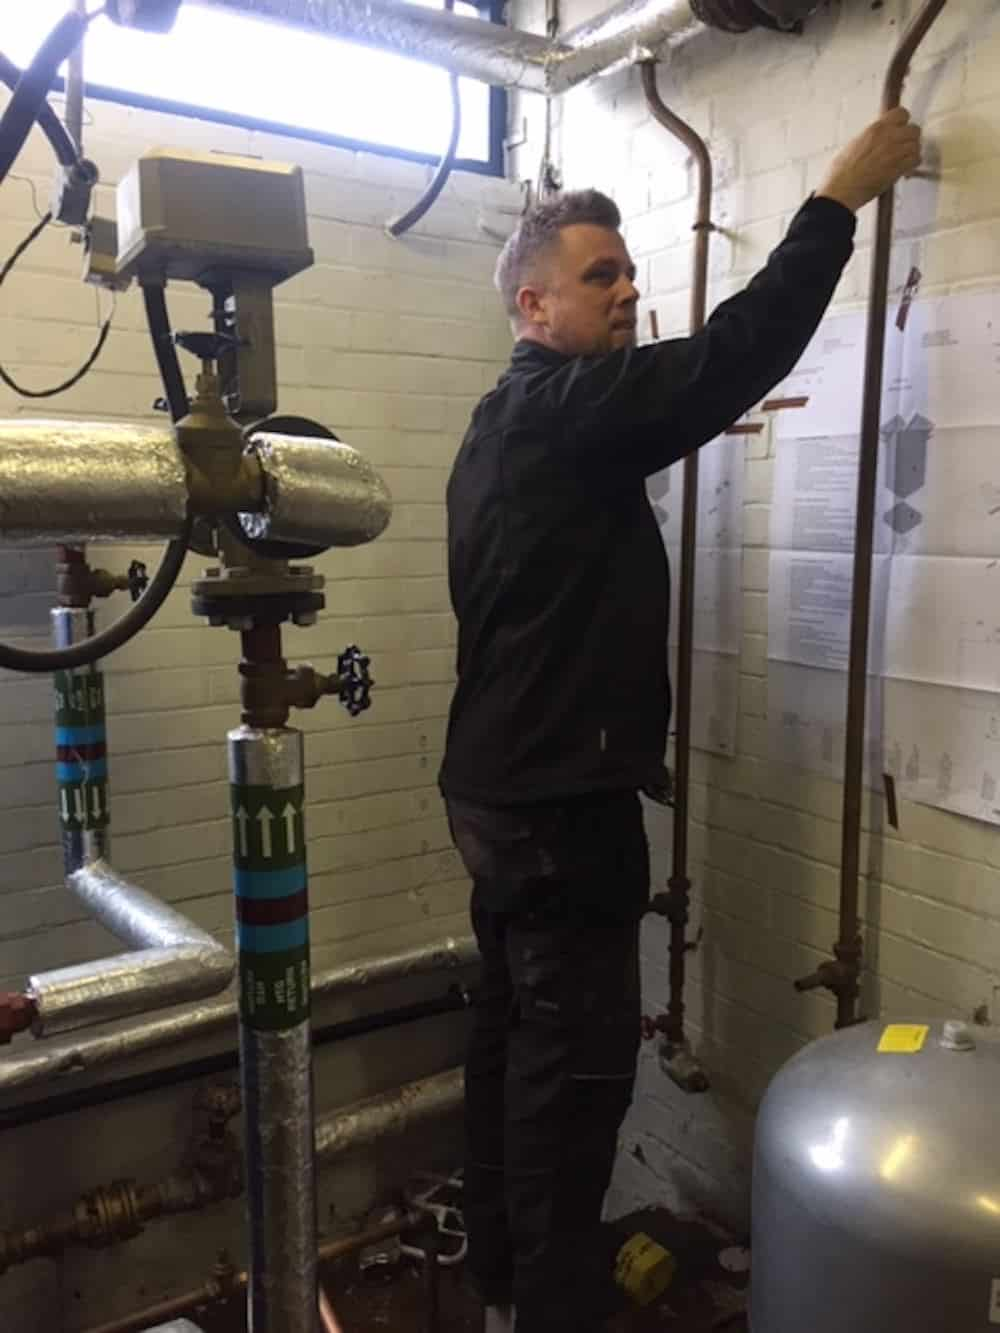 Marking up in the boiler room for the location of the new boilers